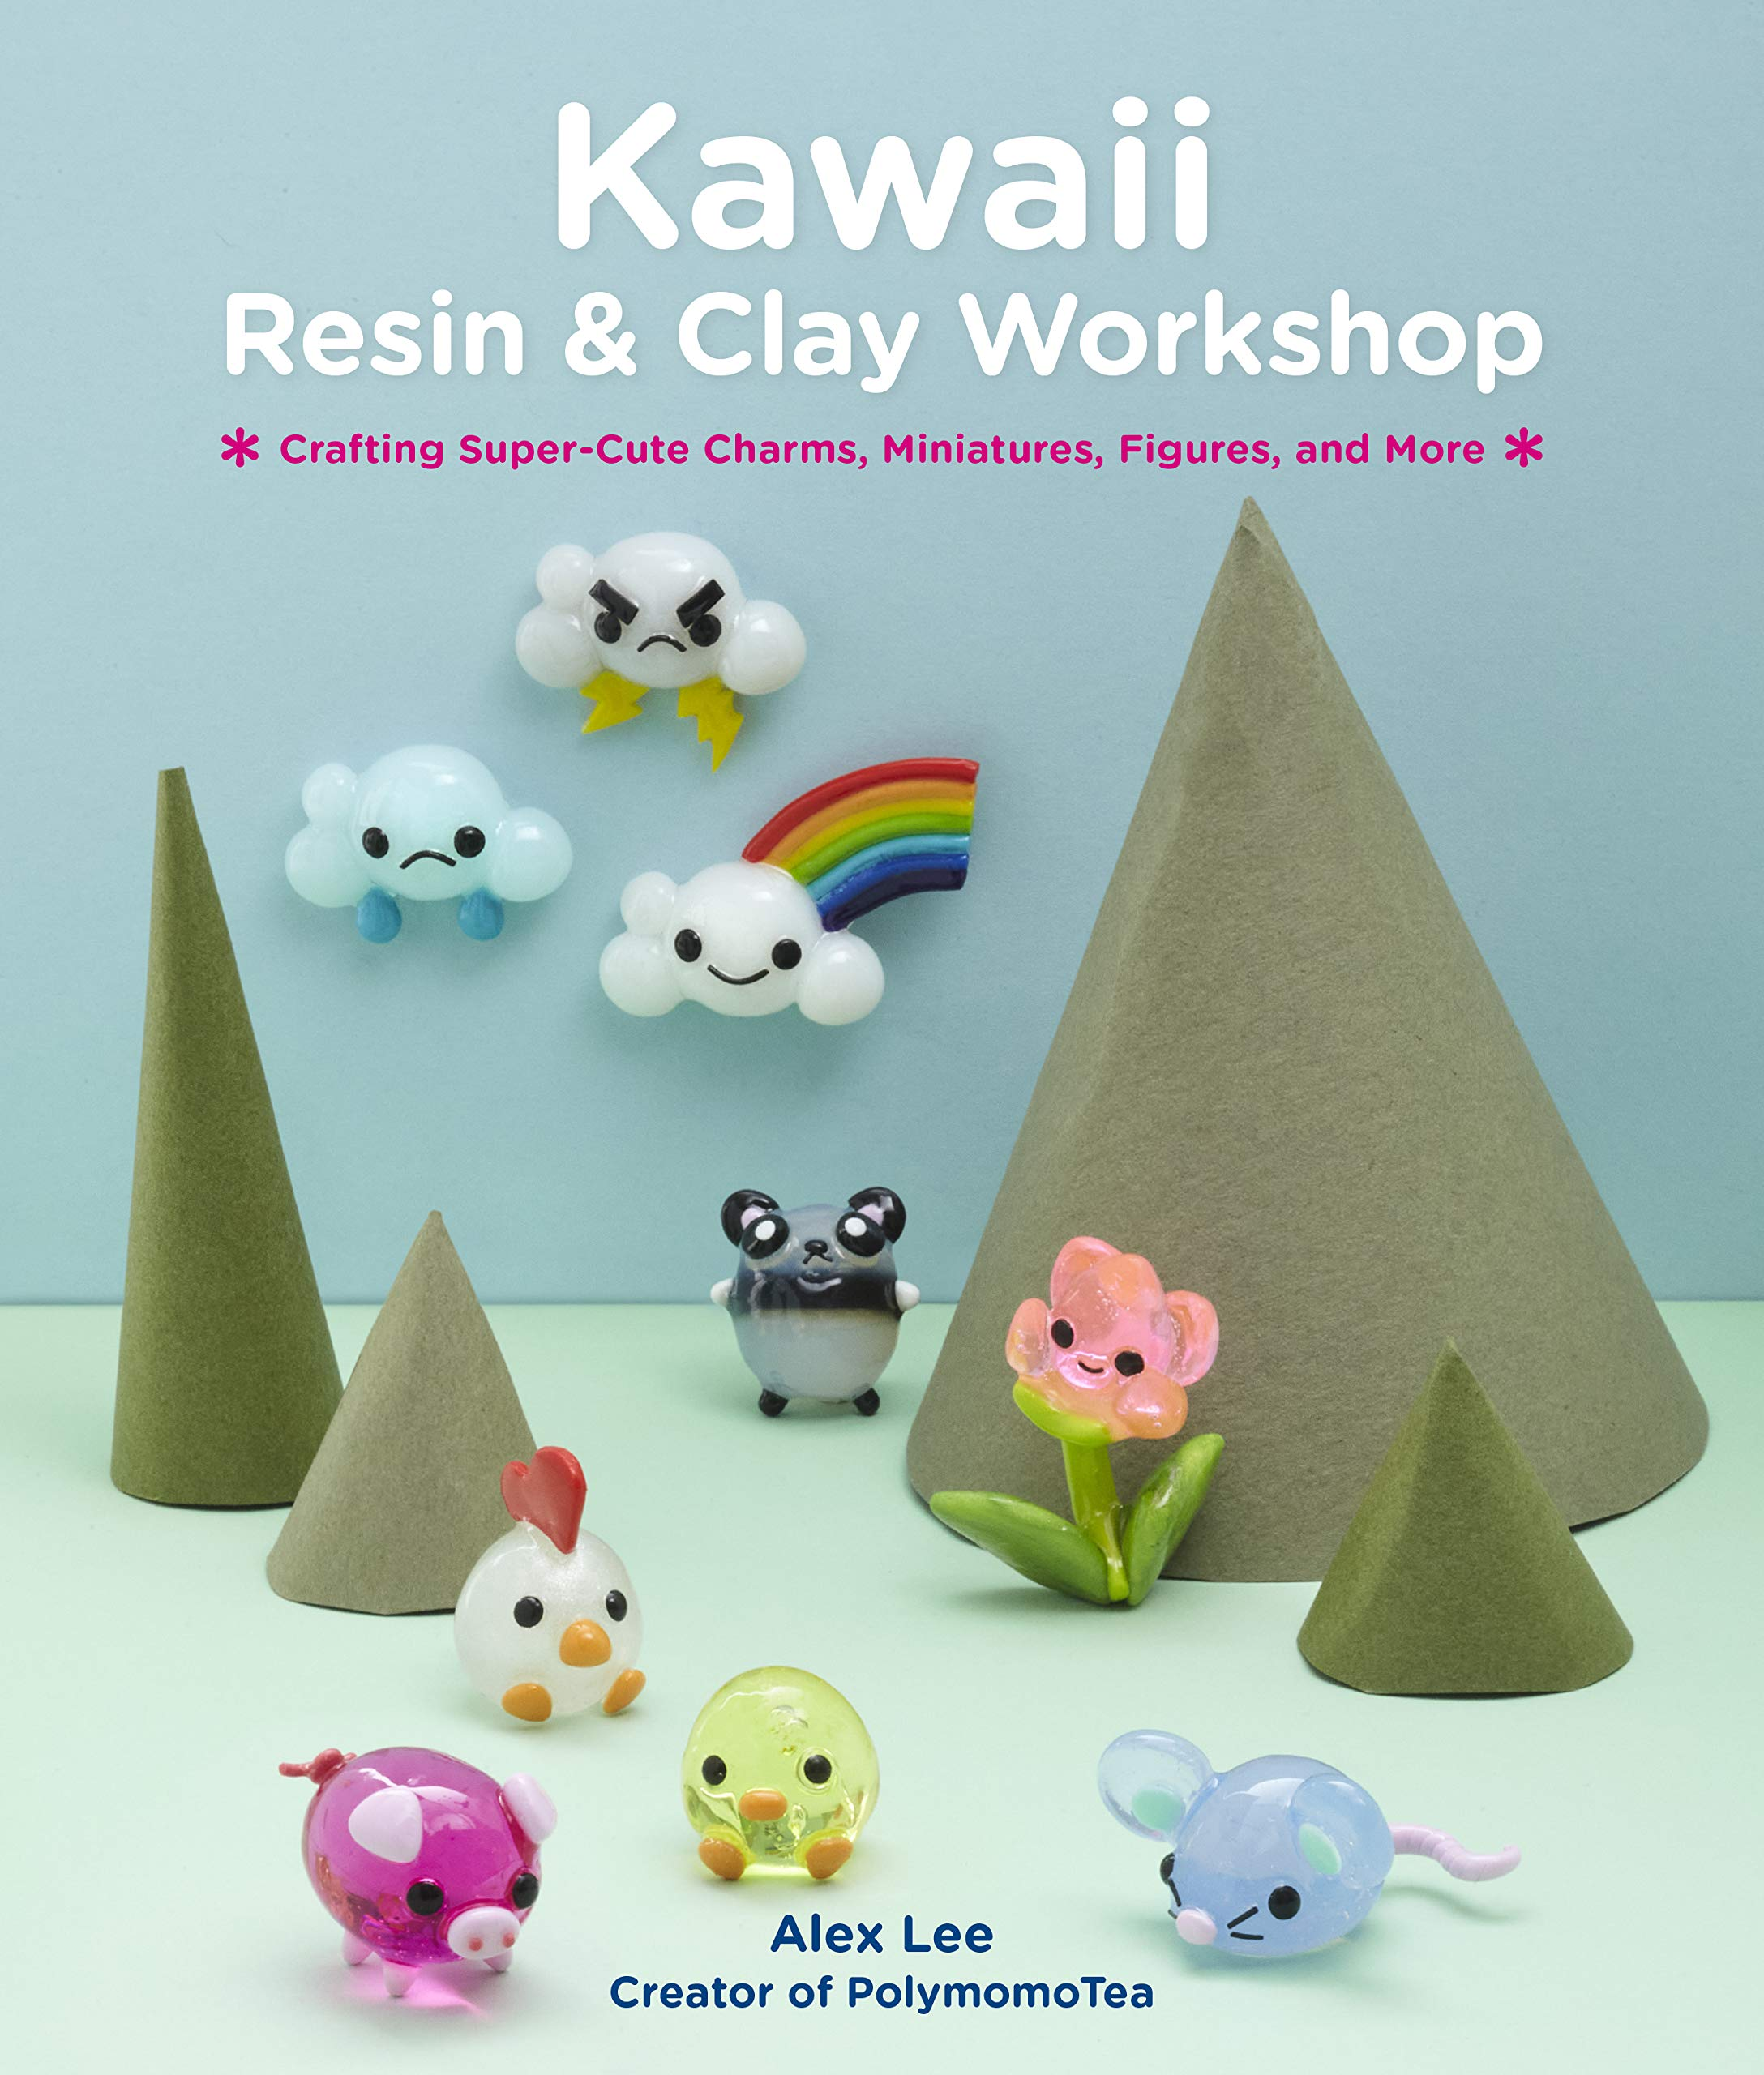 Kawaii Resin and Clay Workshop: Crafting Super- Cute Charms, Miniatures, Figures, and More